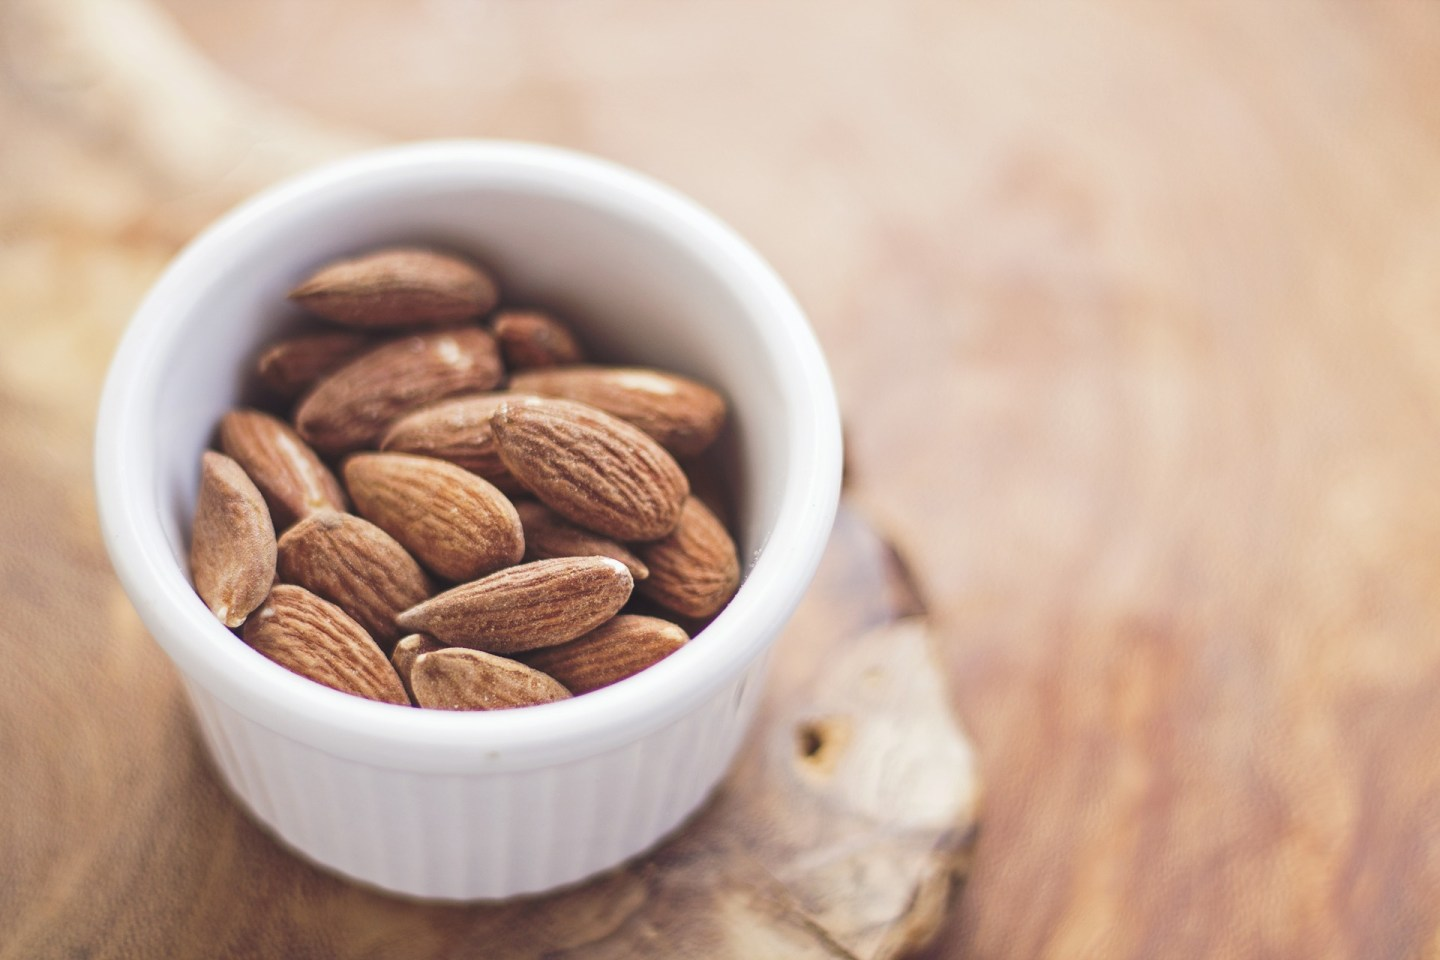 Almonds are great weight loss-friendly foods